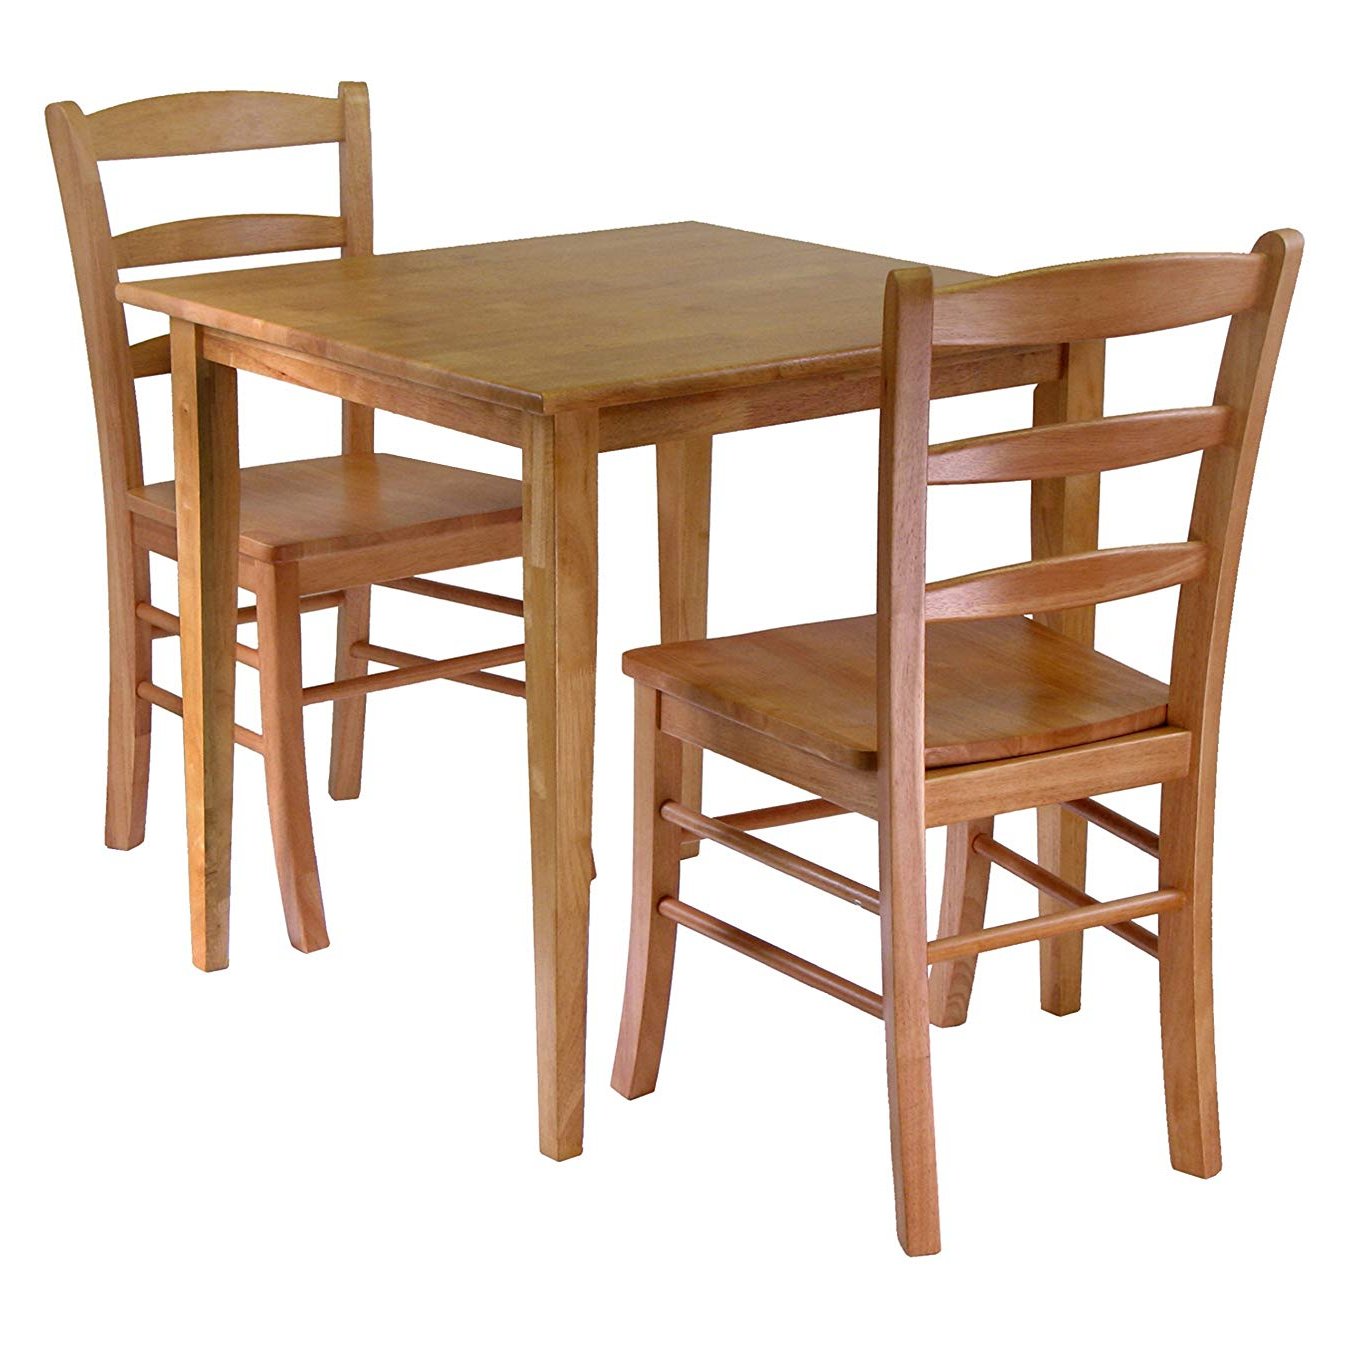 Upbring Marketplace: Donate To Families In Need Via Wishlists Regarding Fashionable Nutter 3 Piece Dining Sets (Gallery 11 of 20)